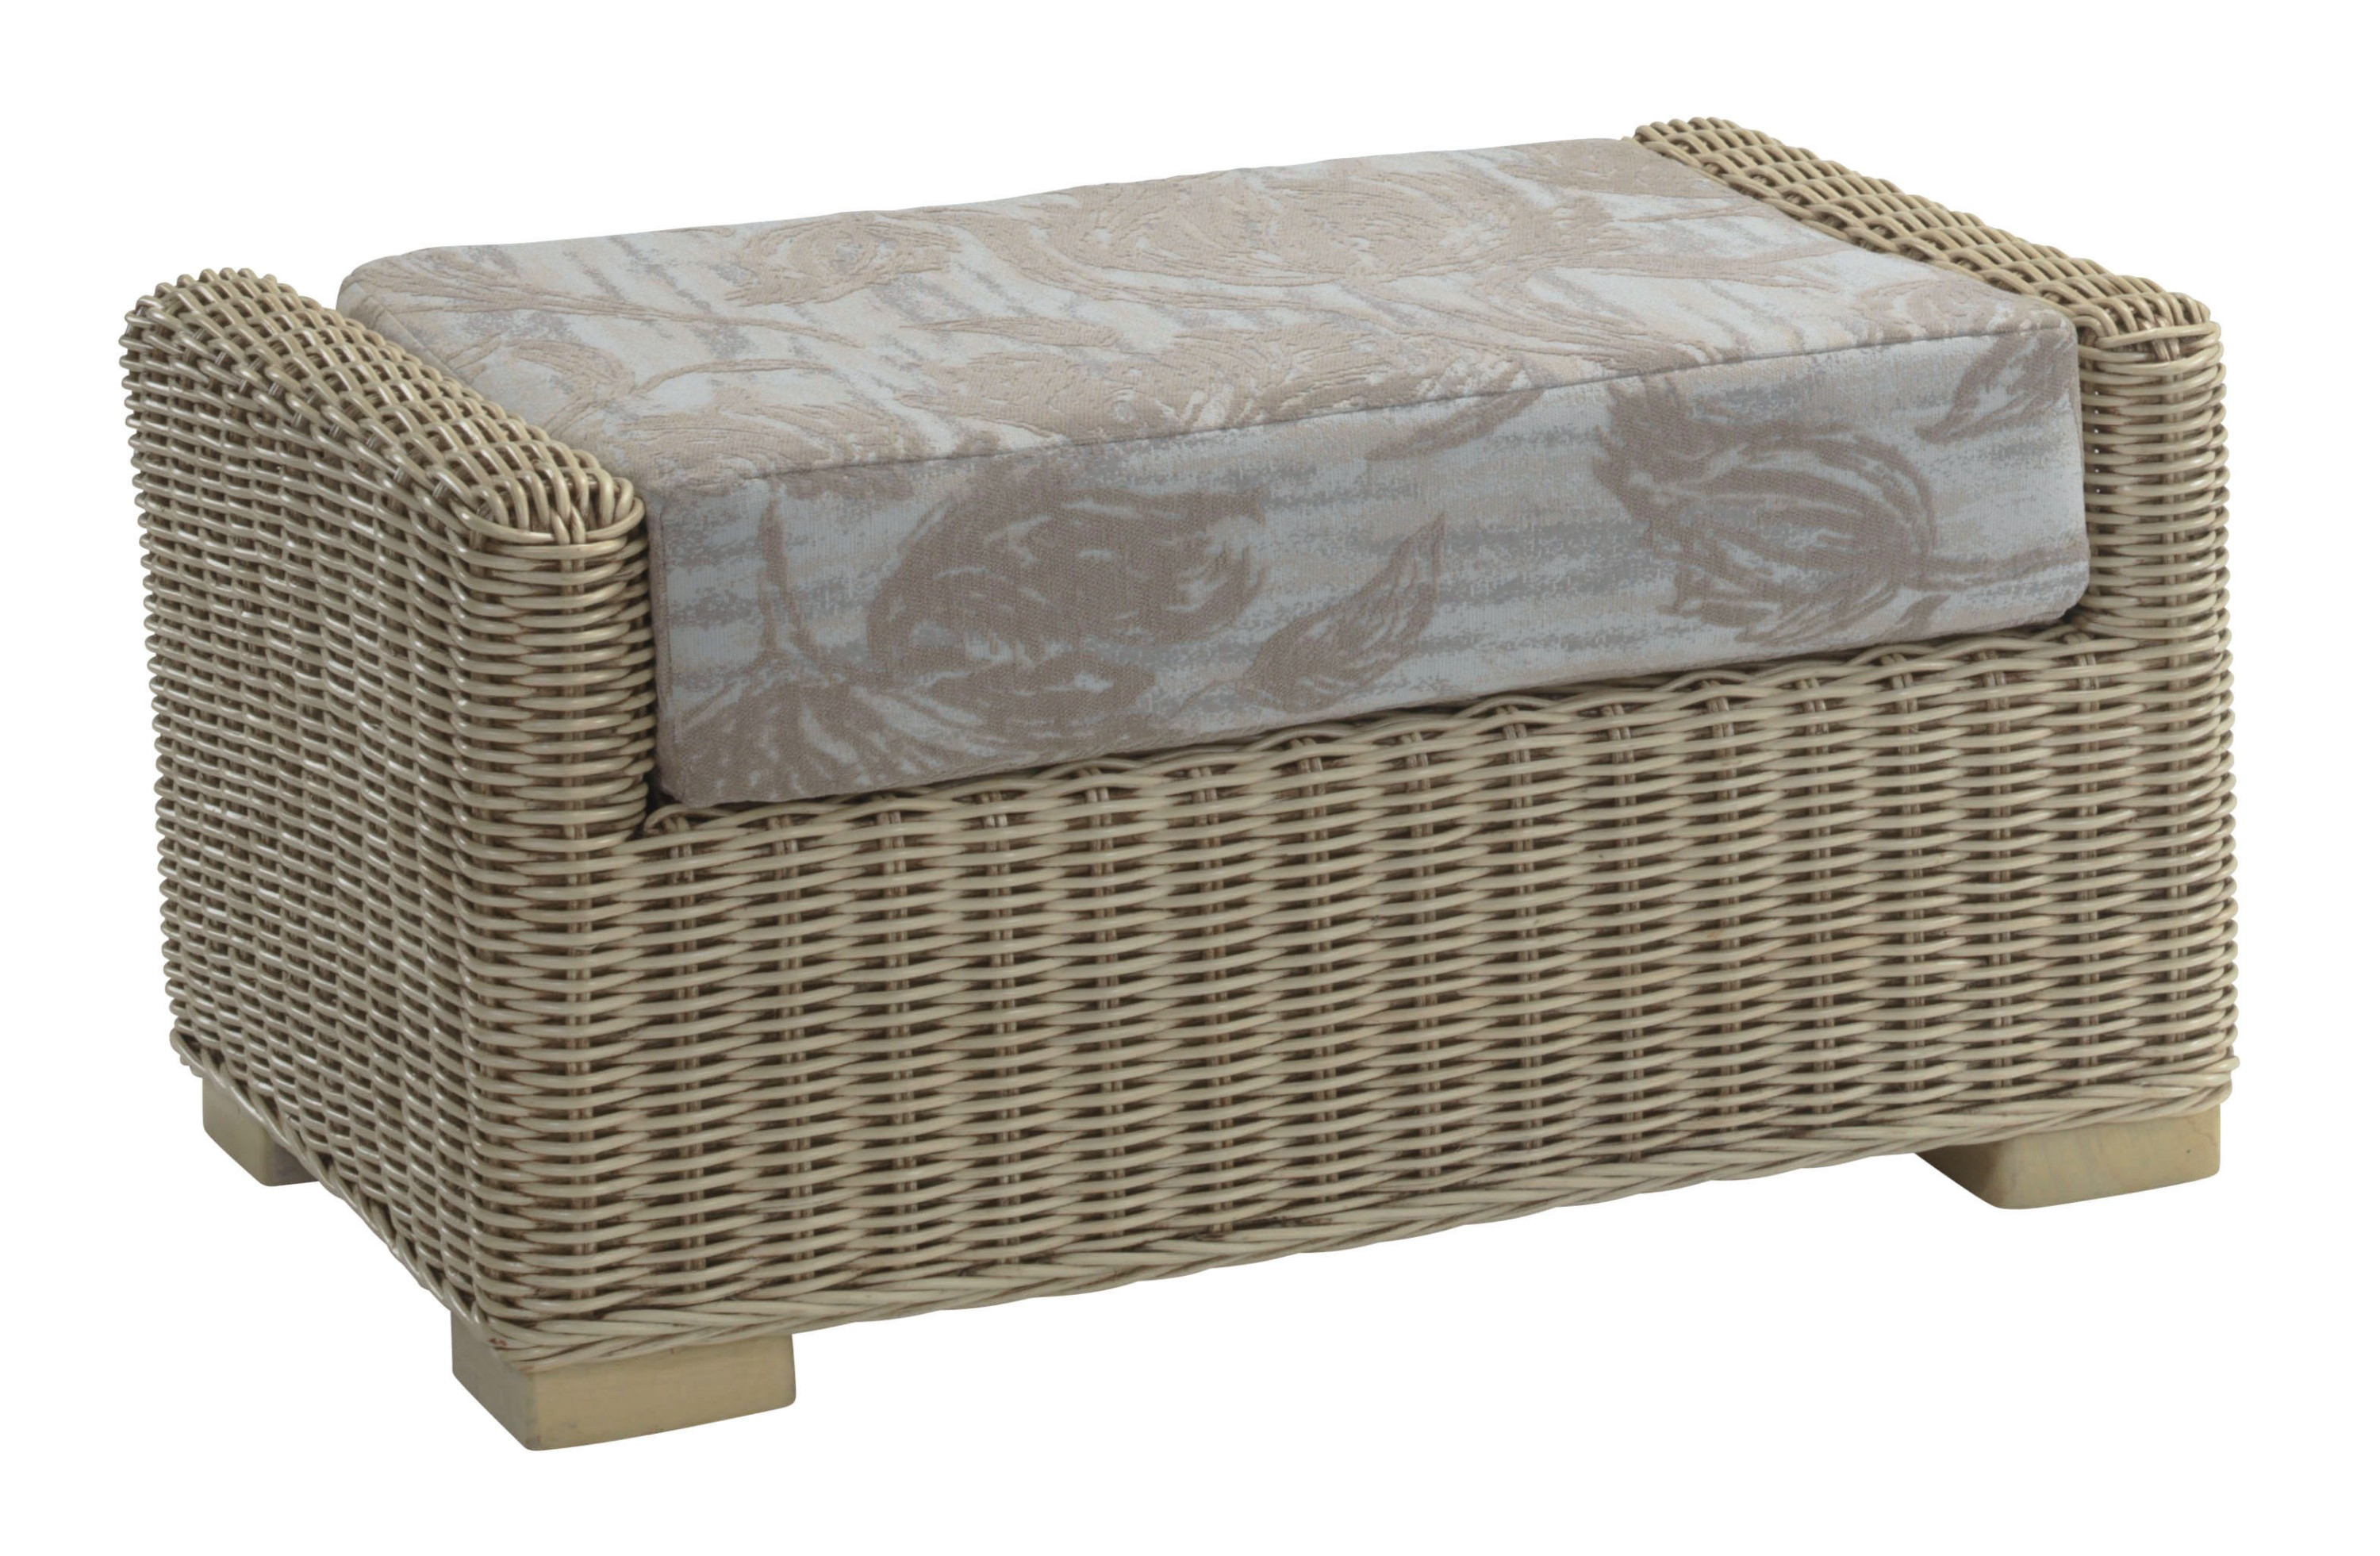 Desser Burford Footstool sold at Highgate Furniture Southend On Sea